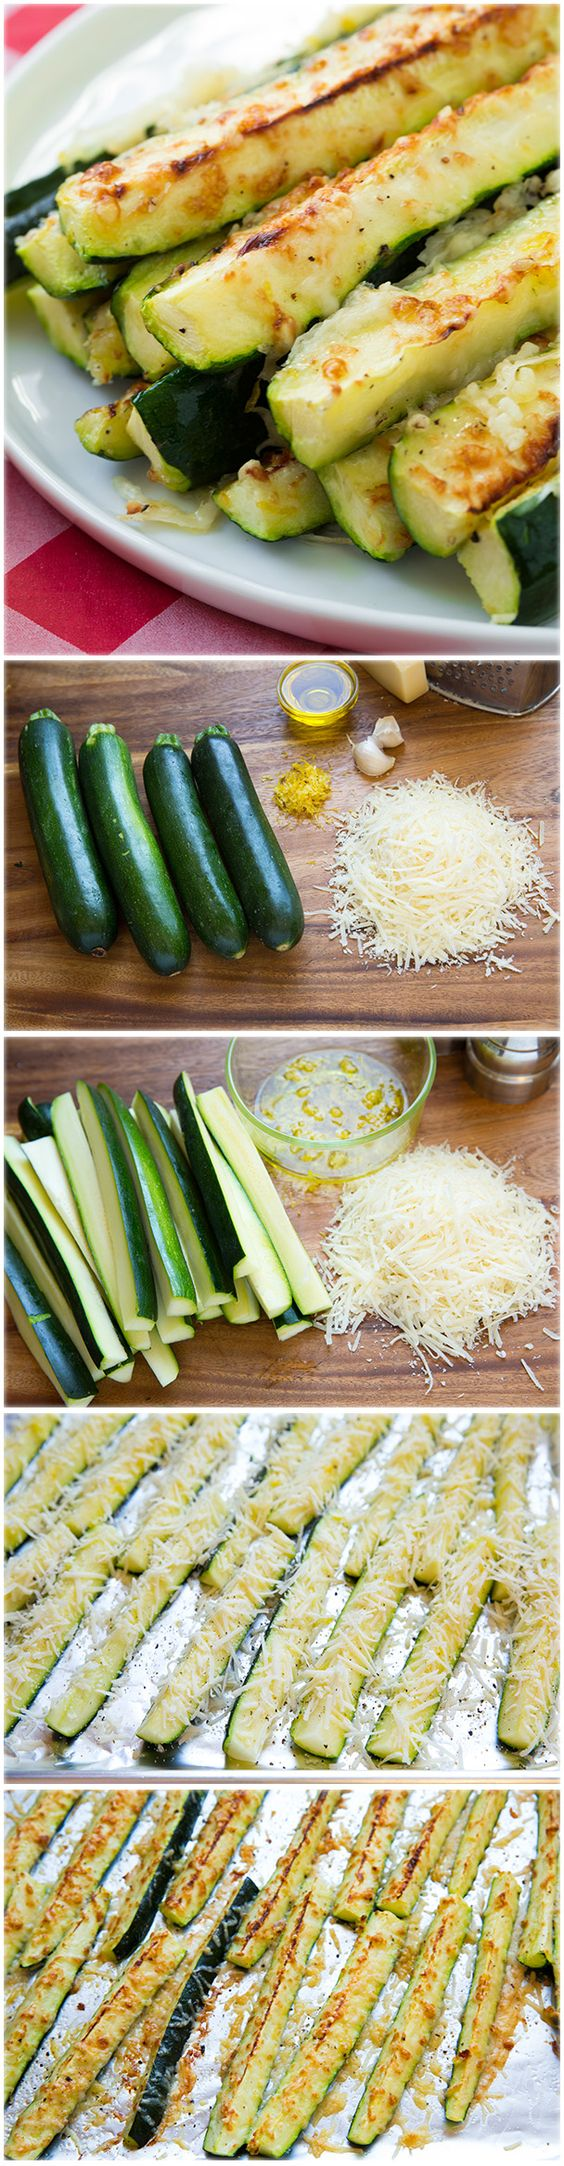 Garlic Lemon and Parmesan Oven Roasted Zucchini - I think I finished half of the recipe off myself! So delicious!